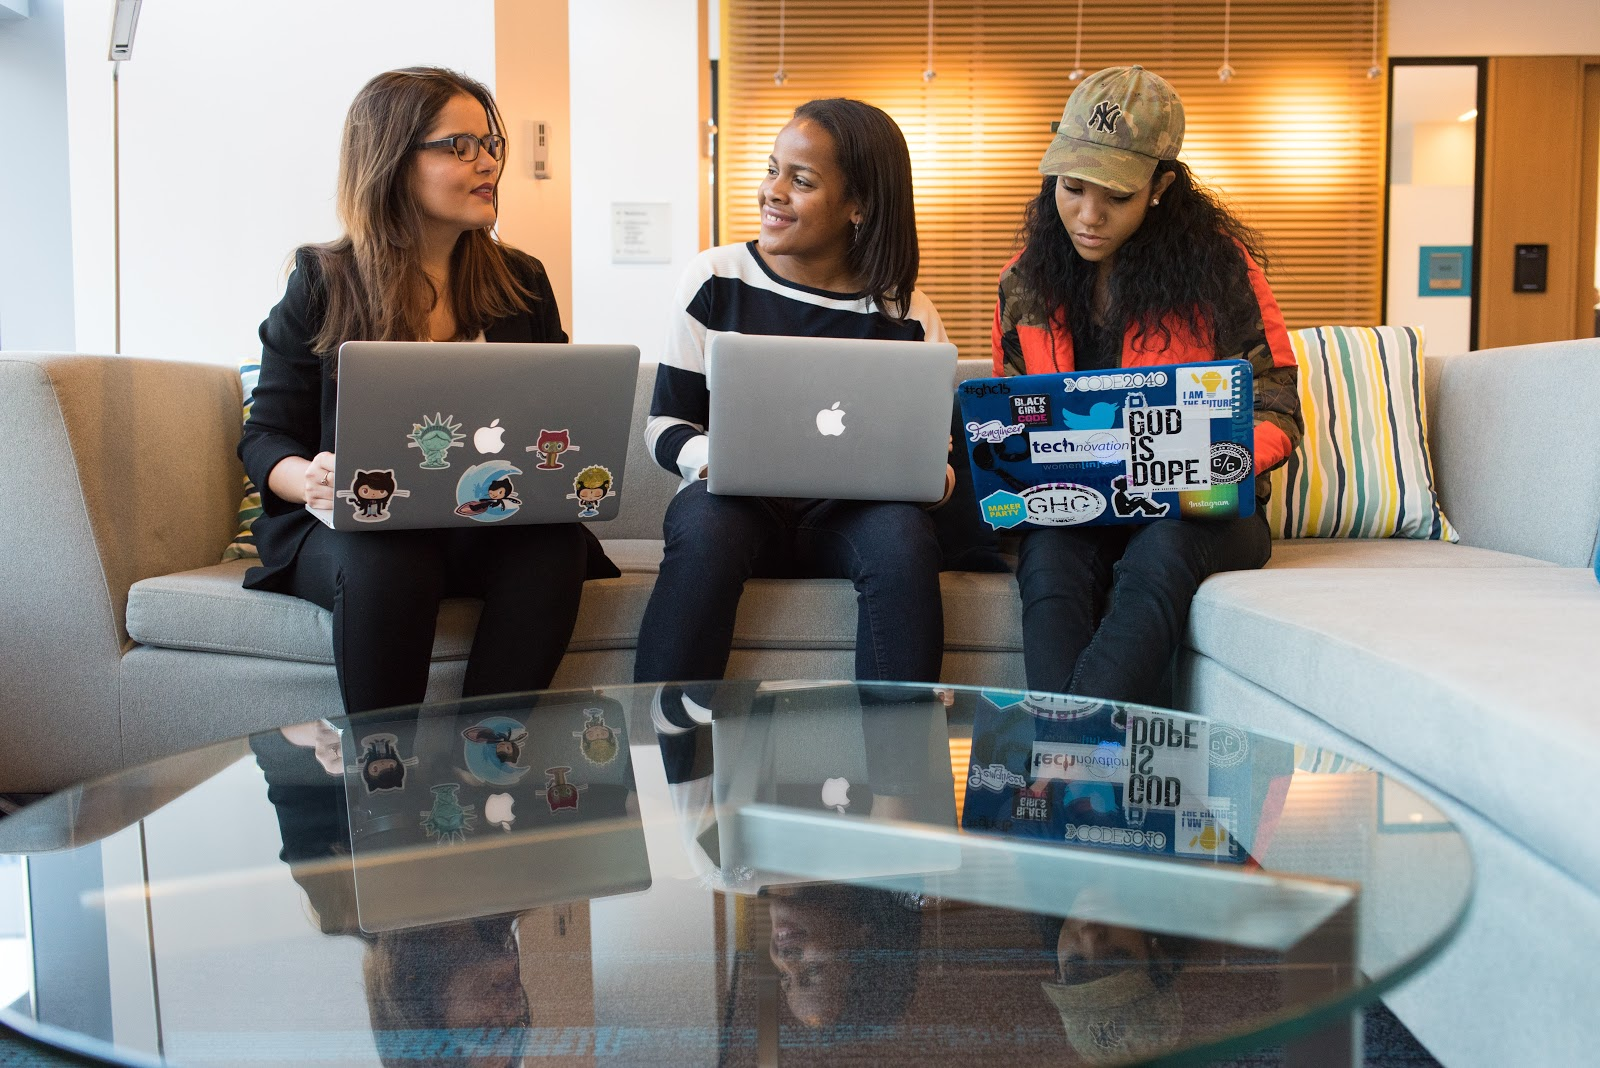 Three women sit on a couch together with their laptops open